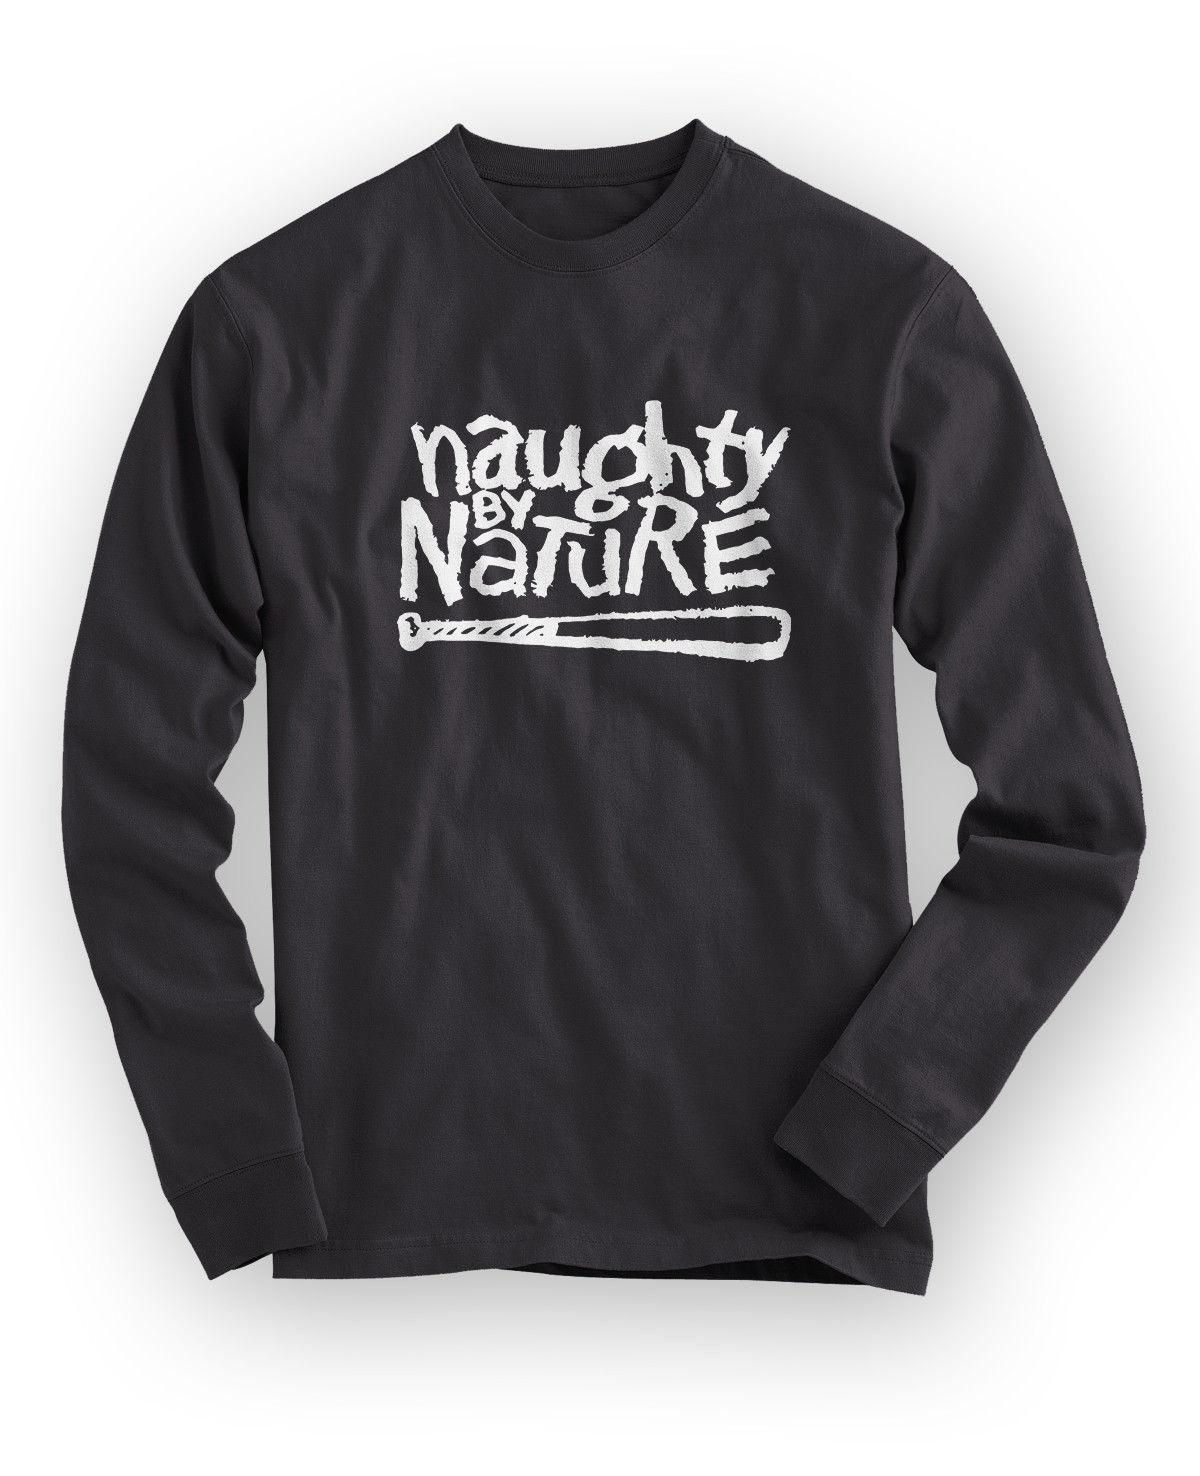 New NAUGHTY BY NATURE Rap Hip Hop Music Logo Men/'s Black T-Shirt Size S to 3XL